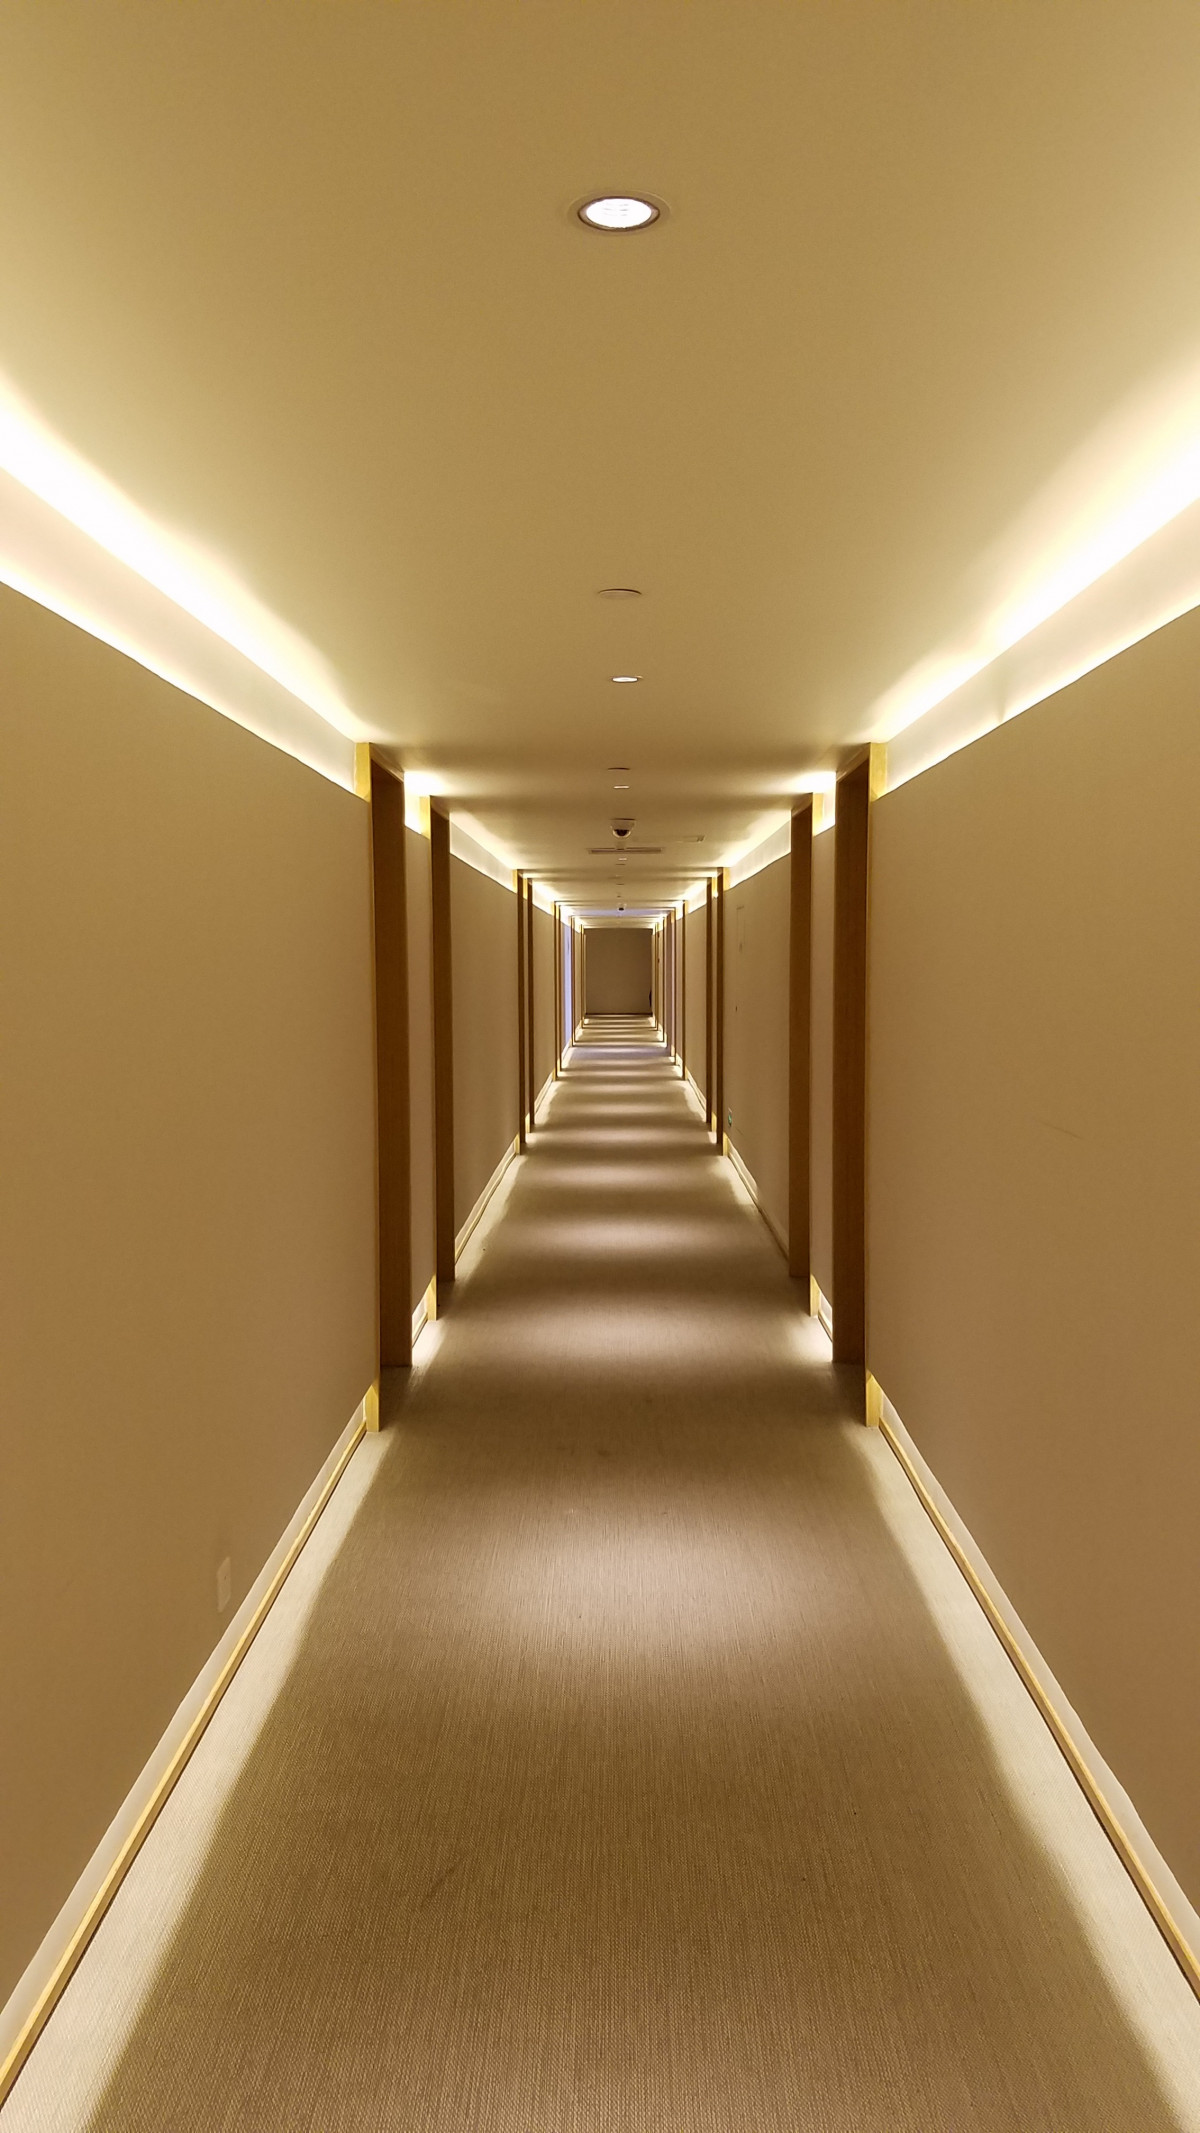 Free Images  floor ceiling hall empty room lighting